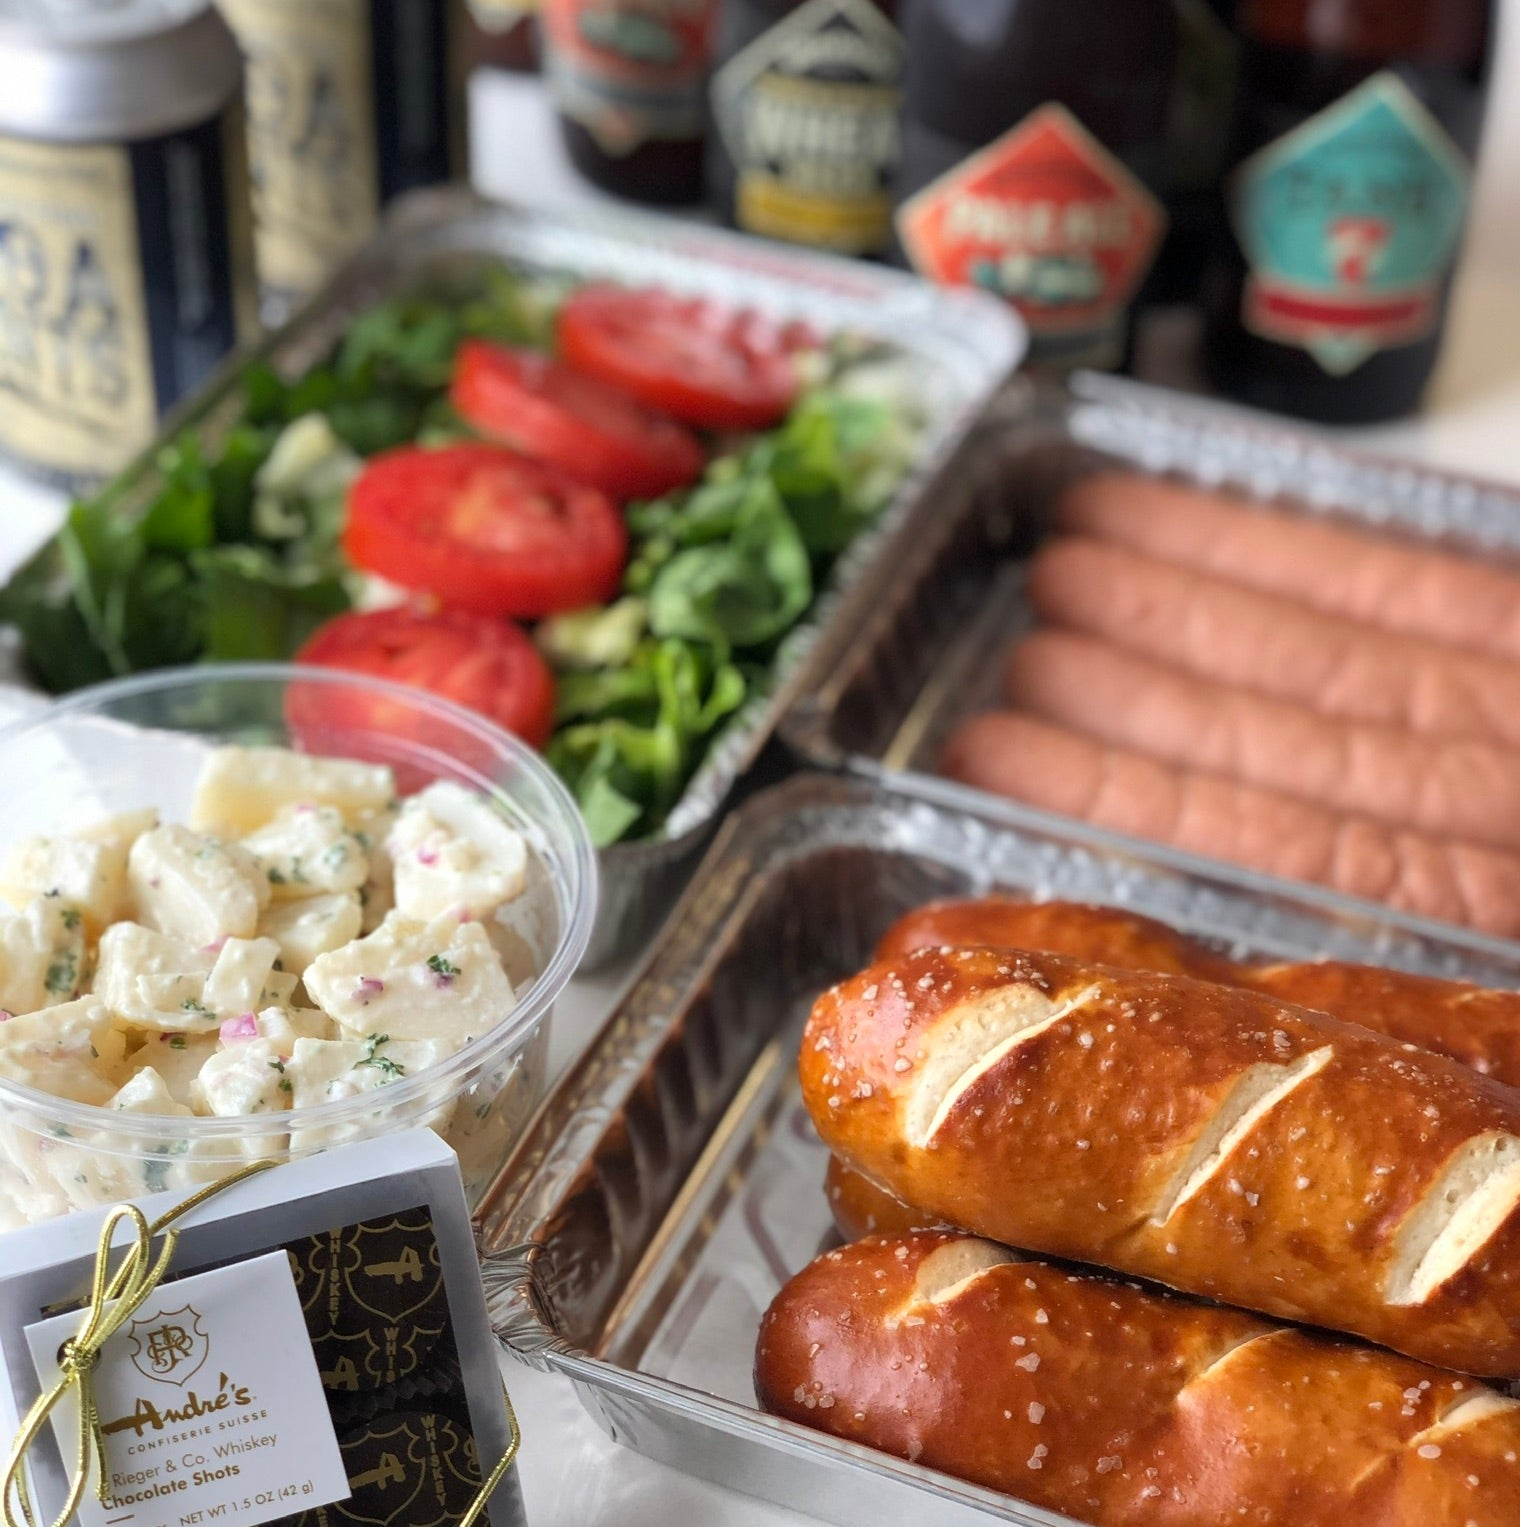 Beer N Brats Pack (Bratwurst or Knackwurst w/Bread, Salads, Beers & Chocolates for 4) Pick up at 5018 Main St.